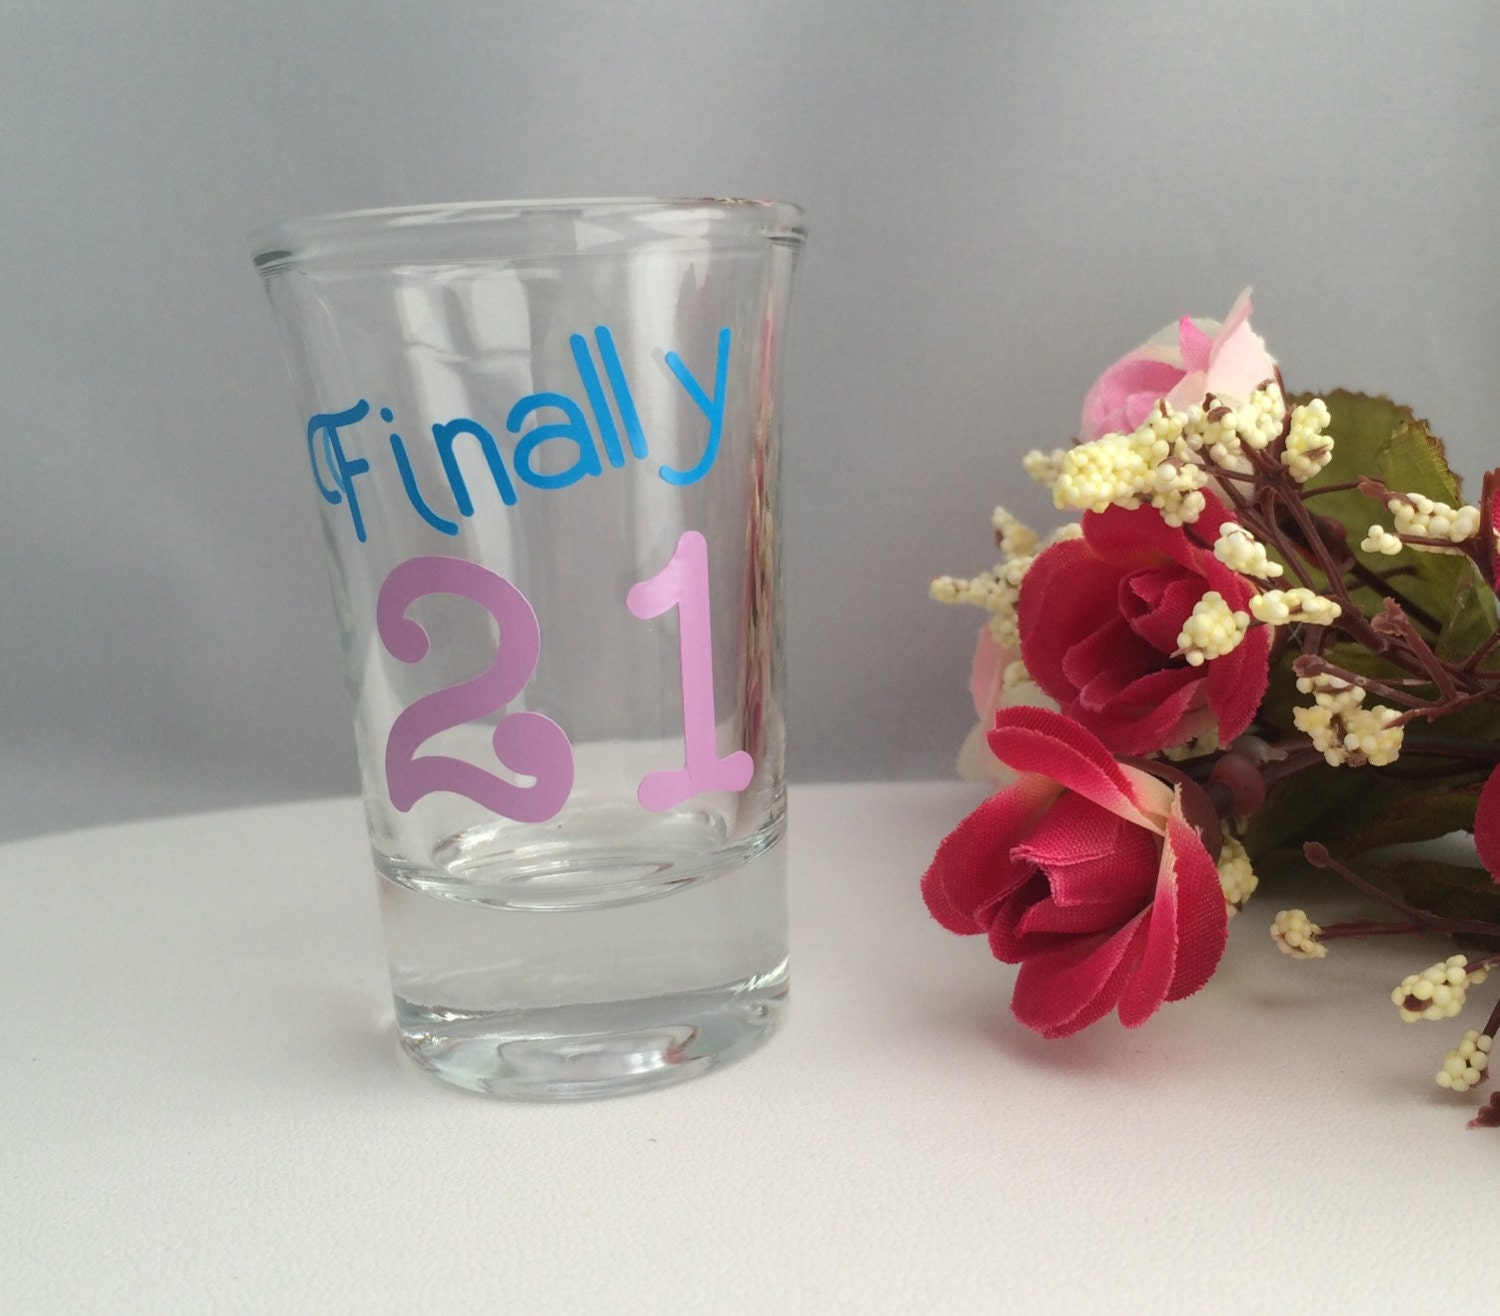 21st Birthday Gifts 21st Birthday Shot Glasses By